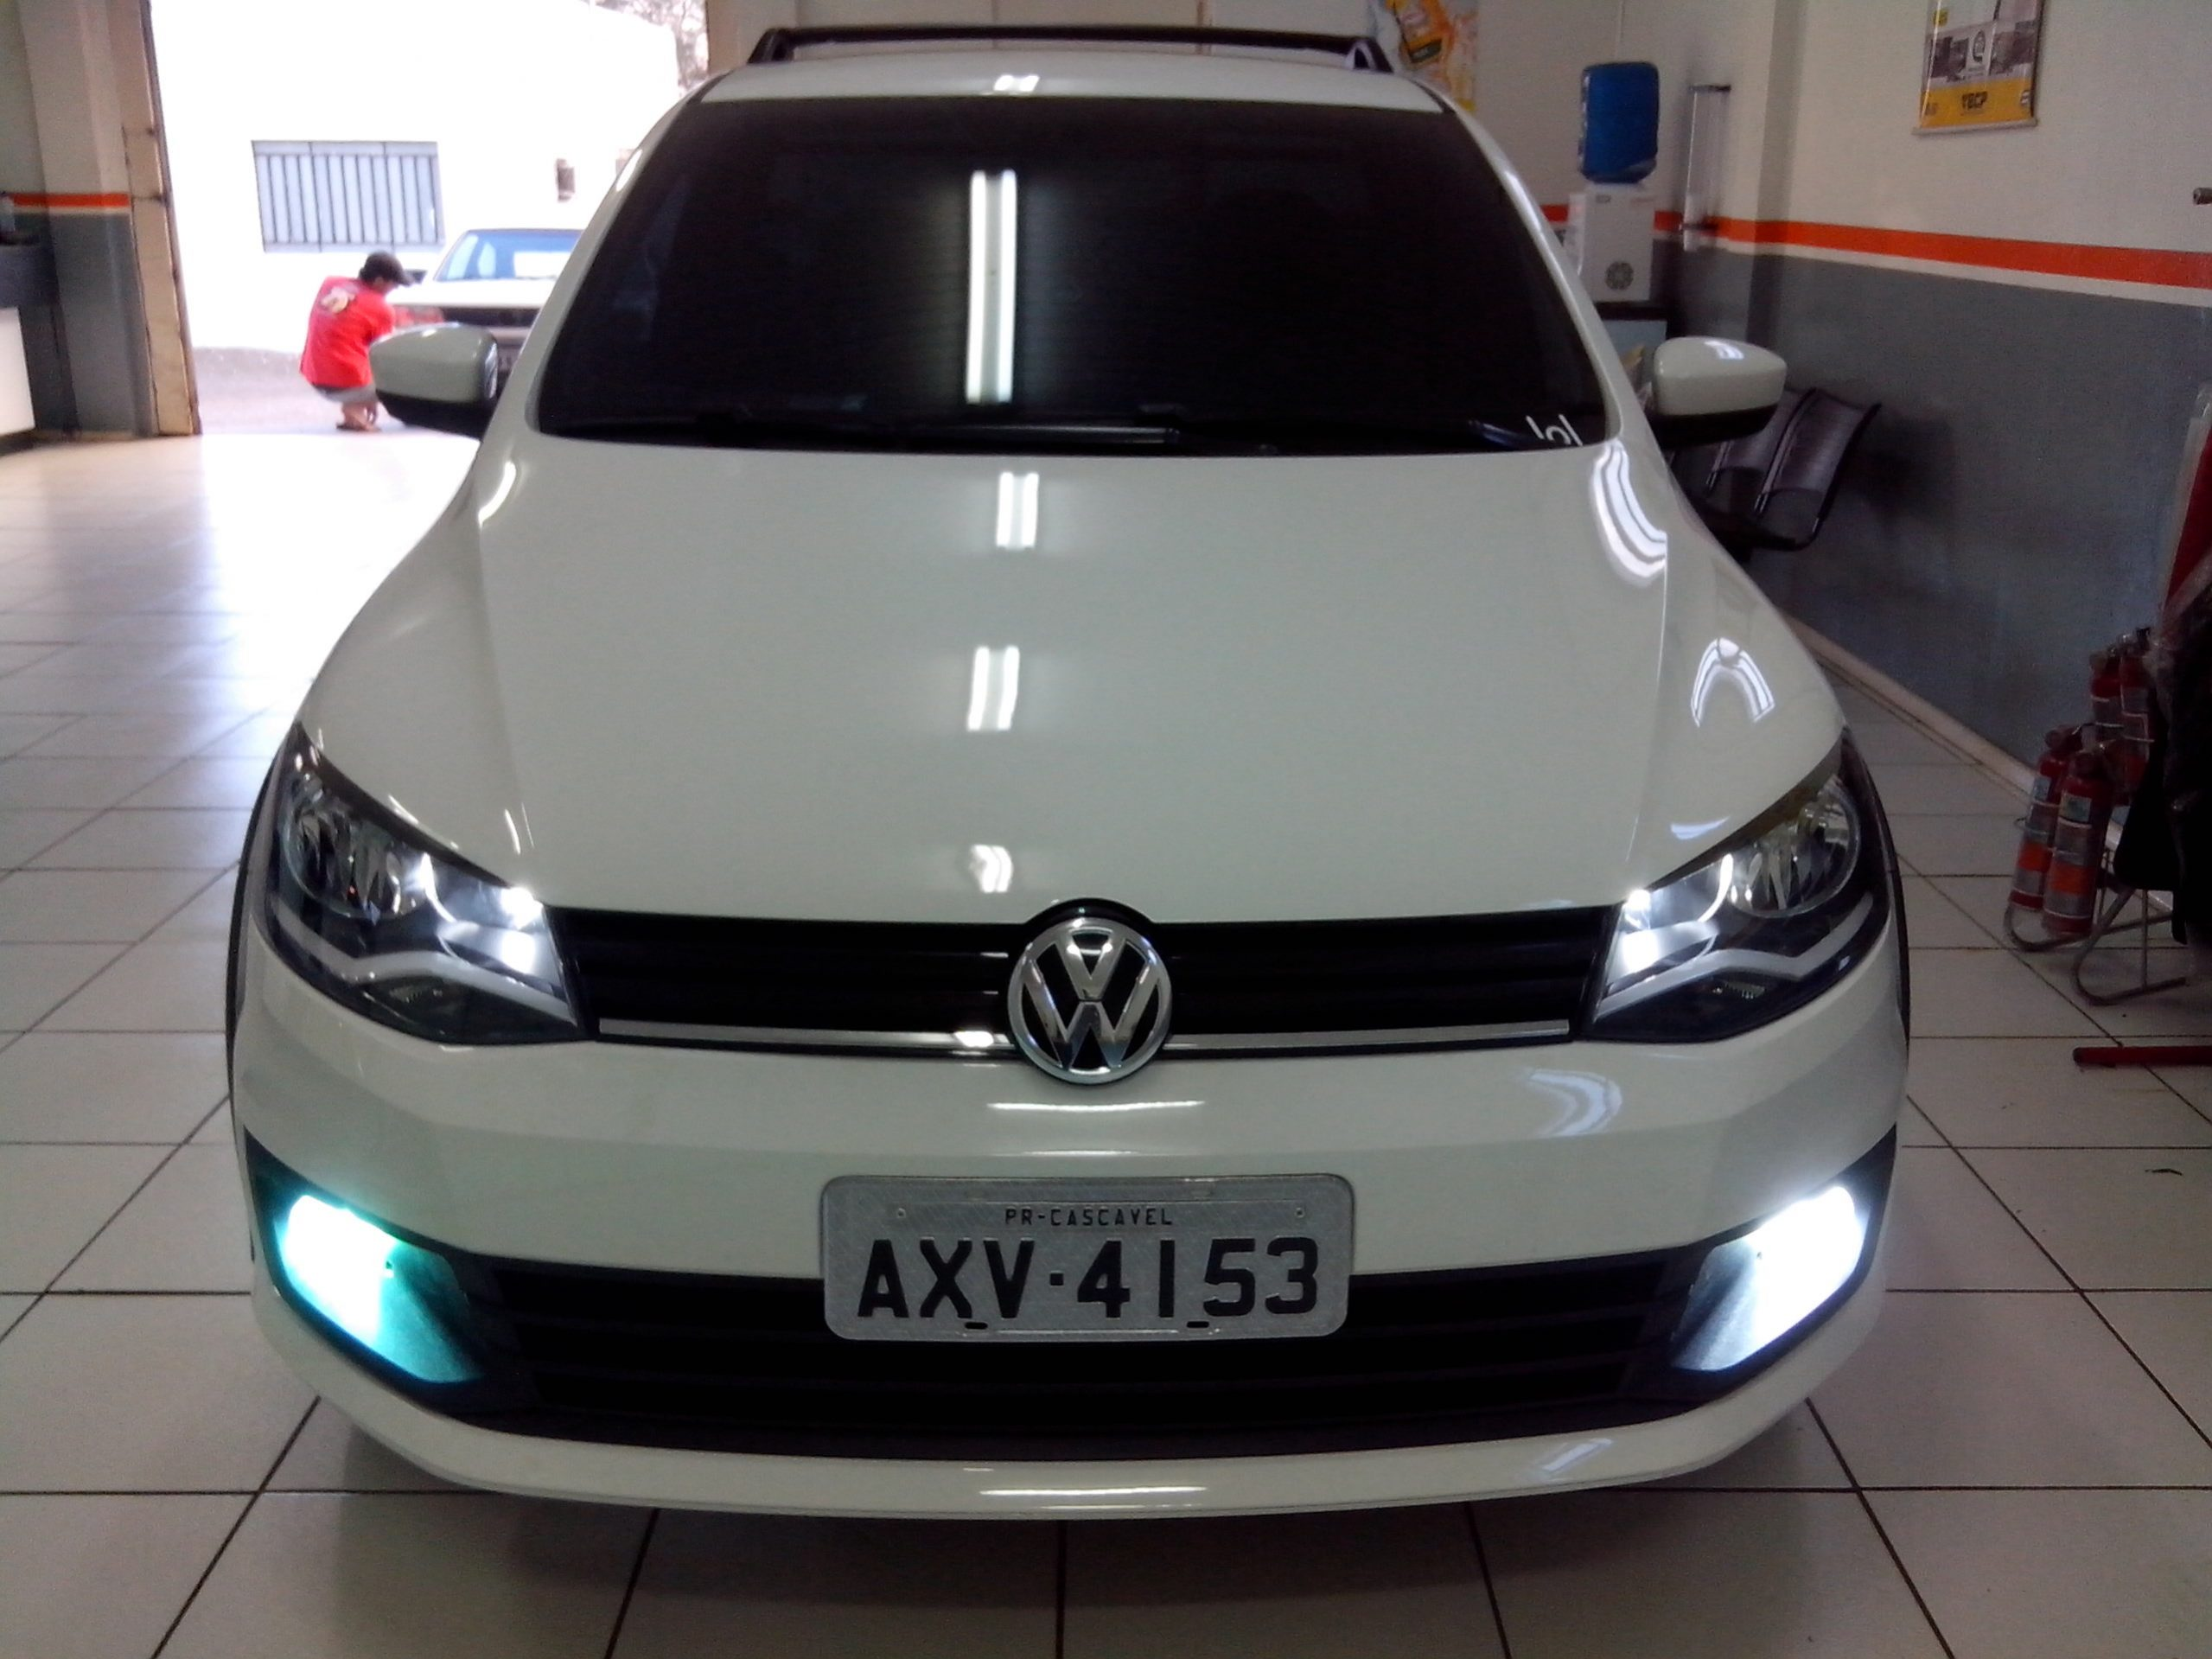 Talento-automotivo-cascavel-pr-vw-saveiro-g6